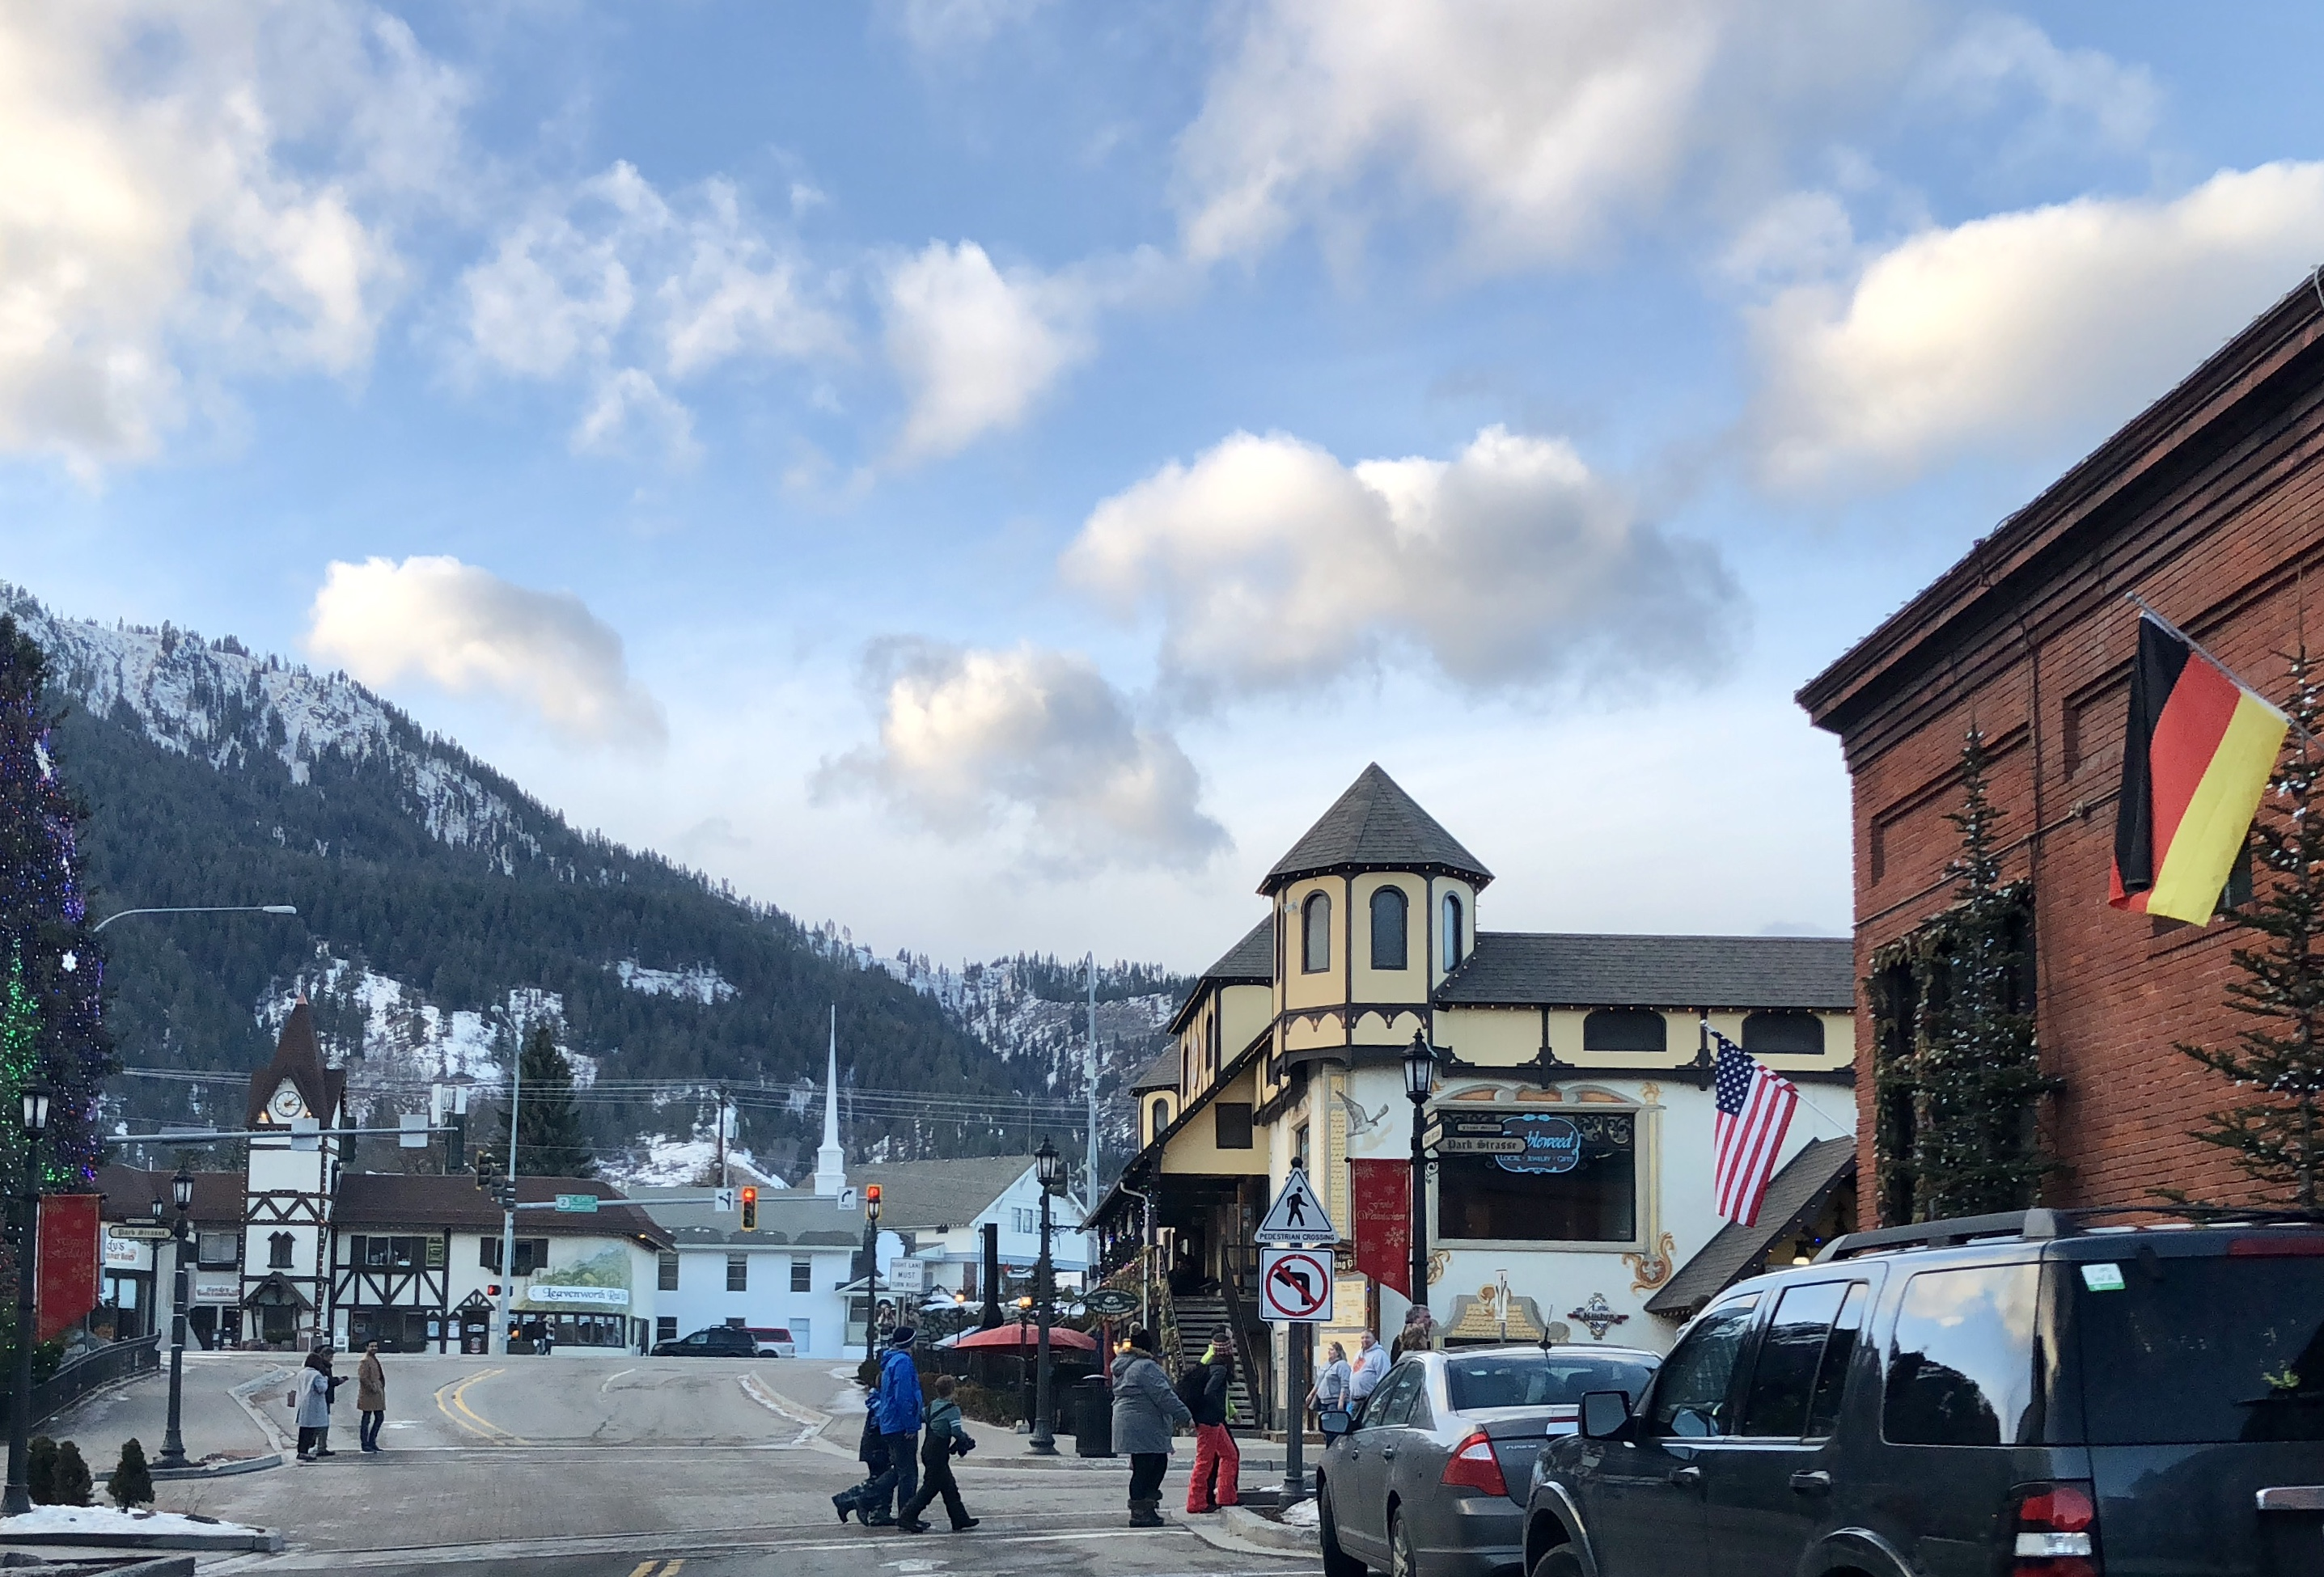 The village center of Leavenworth. Photograph by Rianna Richards, Blogs, Writer